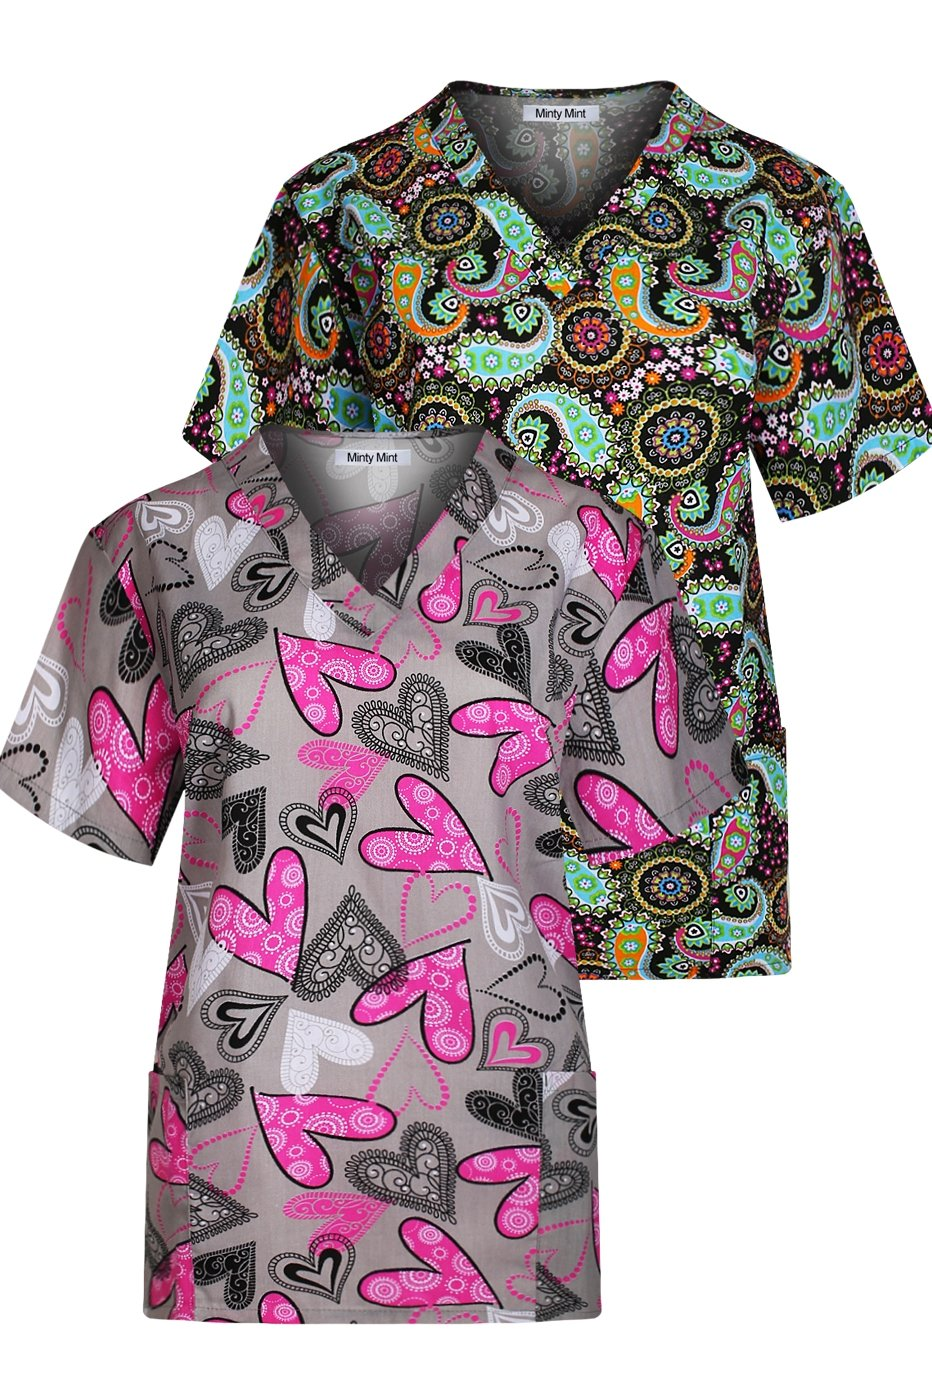 Minty Mint Women's Medical Scrub Printed V-Neck Top Multi Pack Grey Black XS